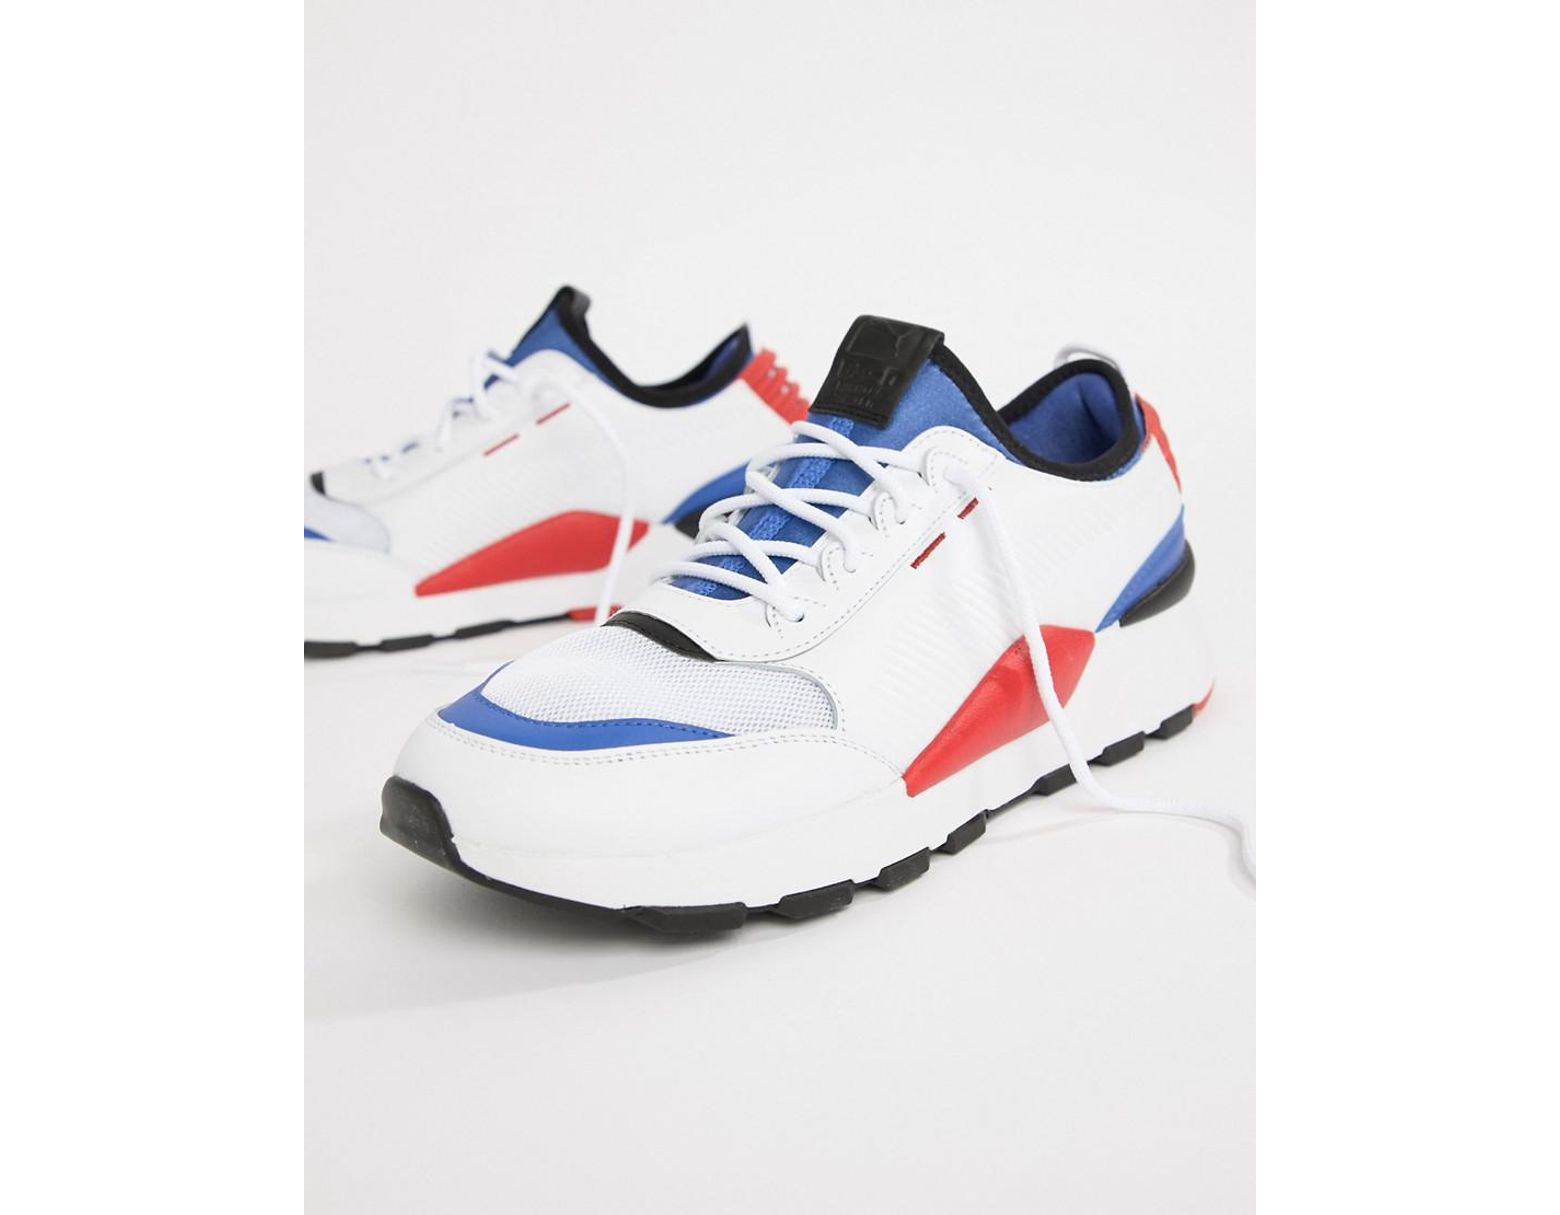 Blanches 36689001 Baskets Rs 0 Homme 0PkXn8wONZ